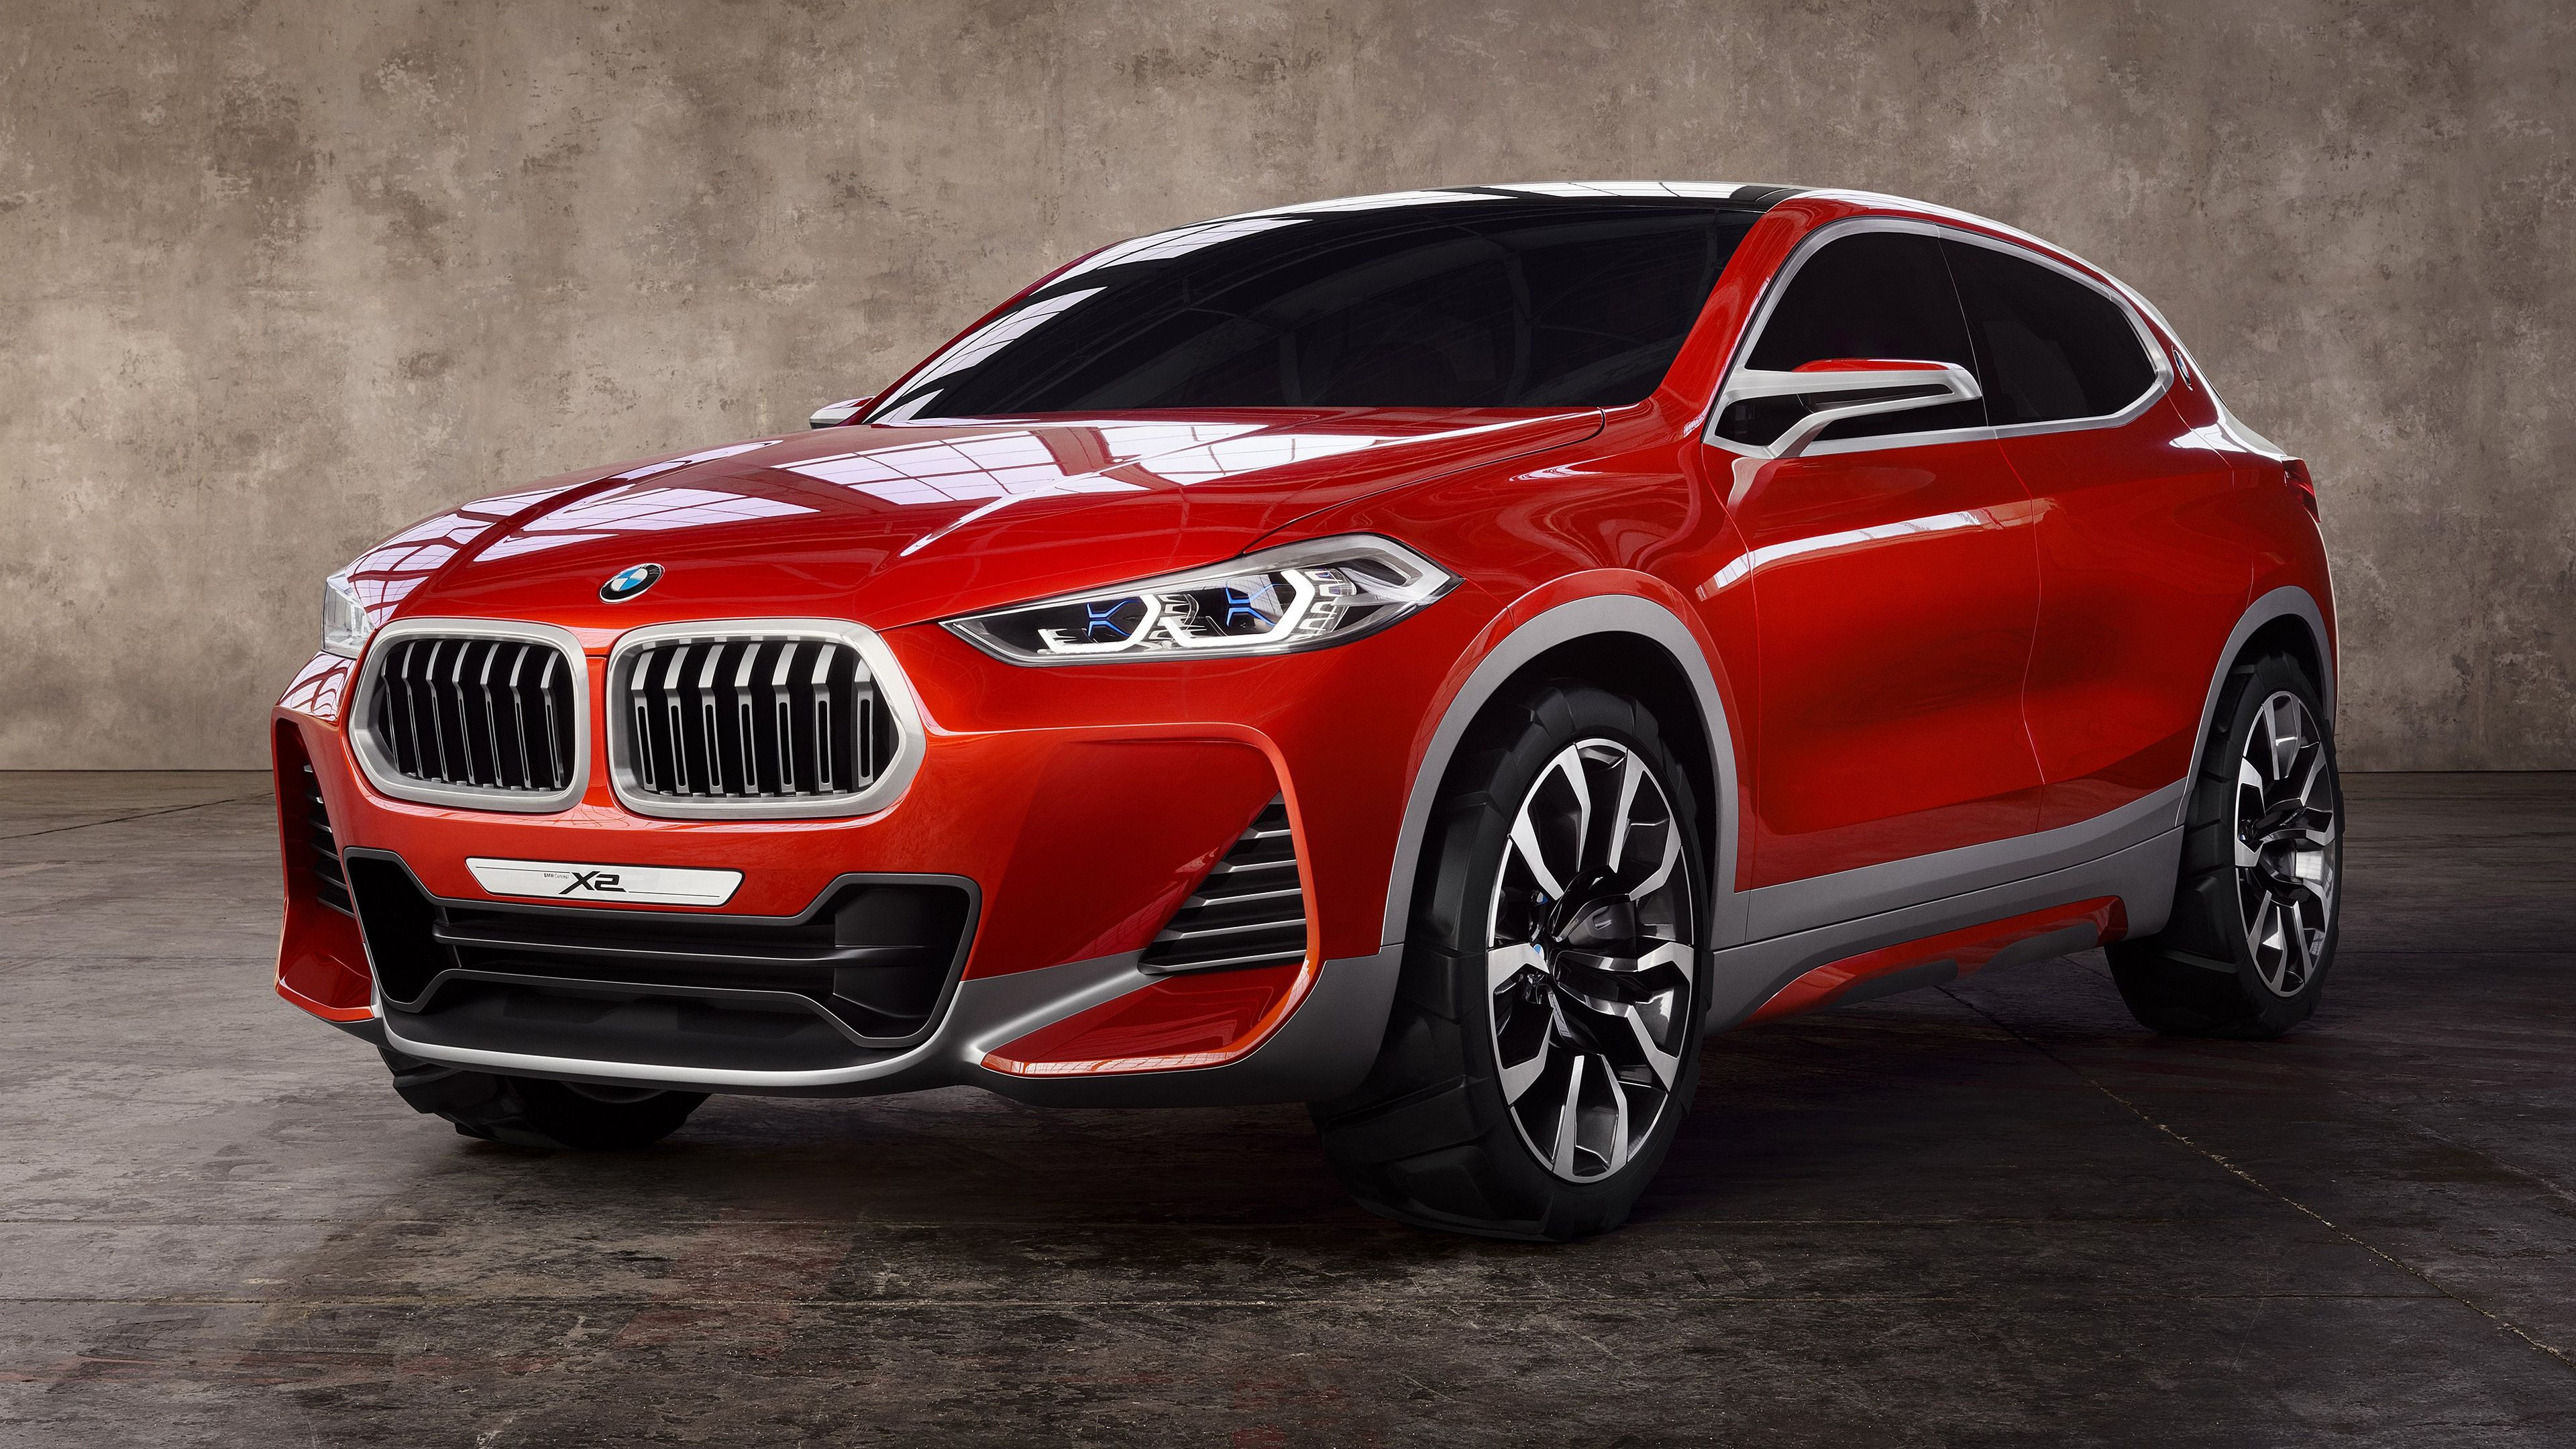 2018 BMW X2 Concept 4K Wallpapers